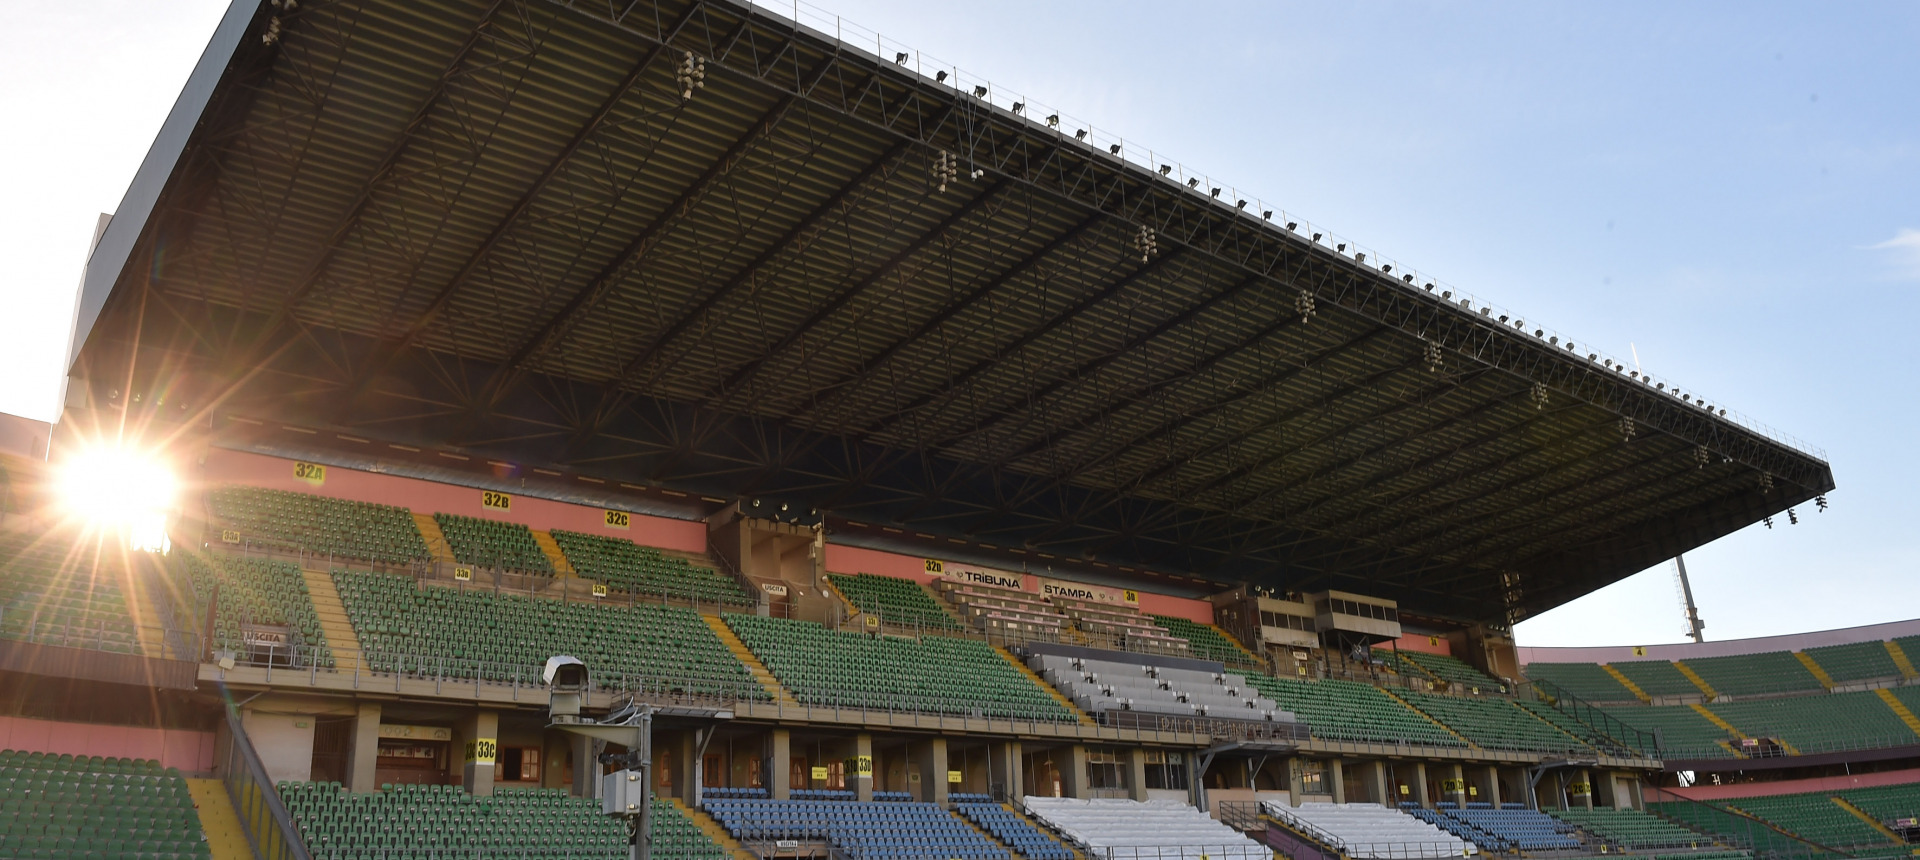 POSTPONED PALERMO POTENZA TO BE PLAYED